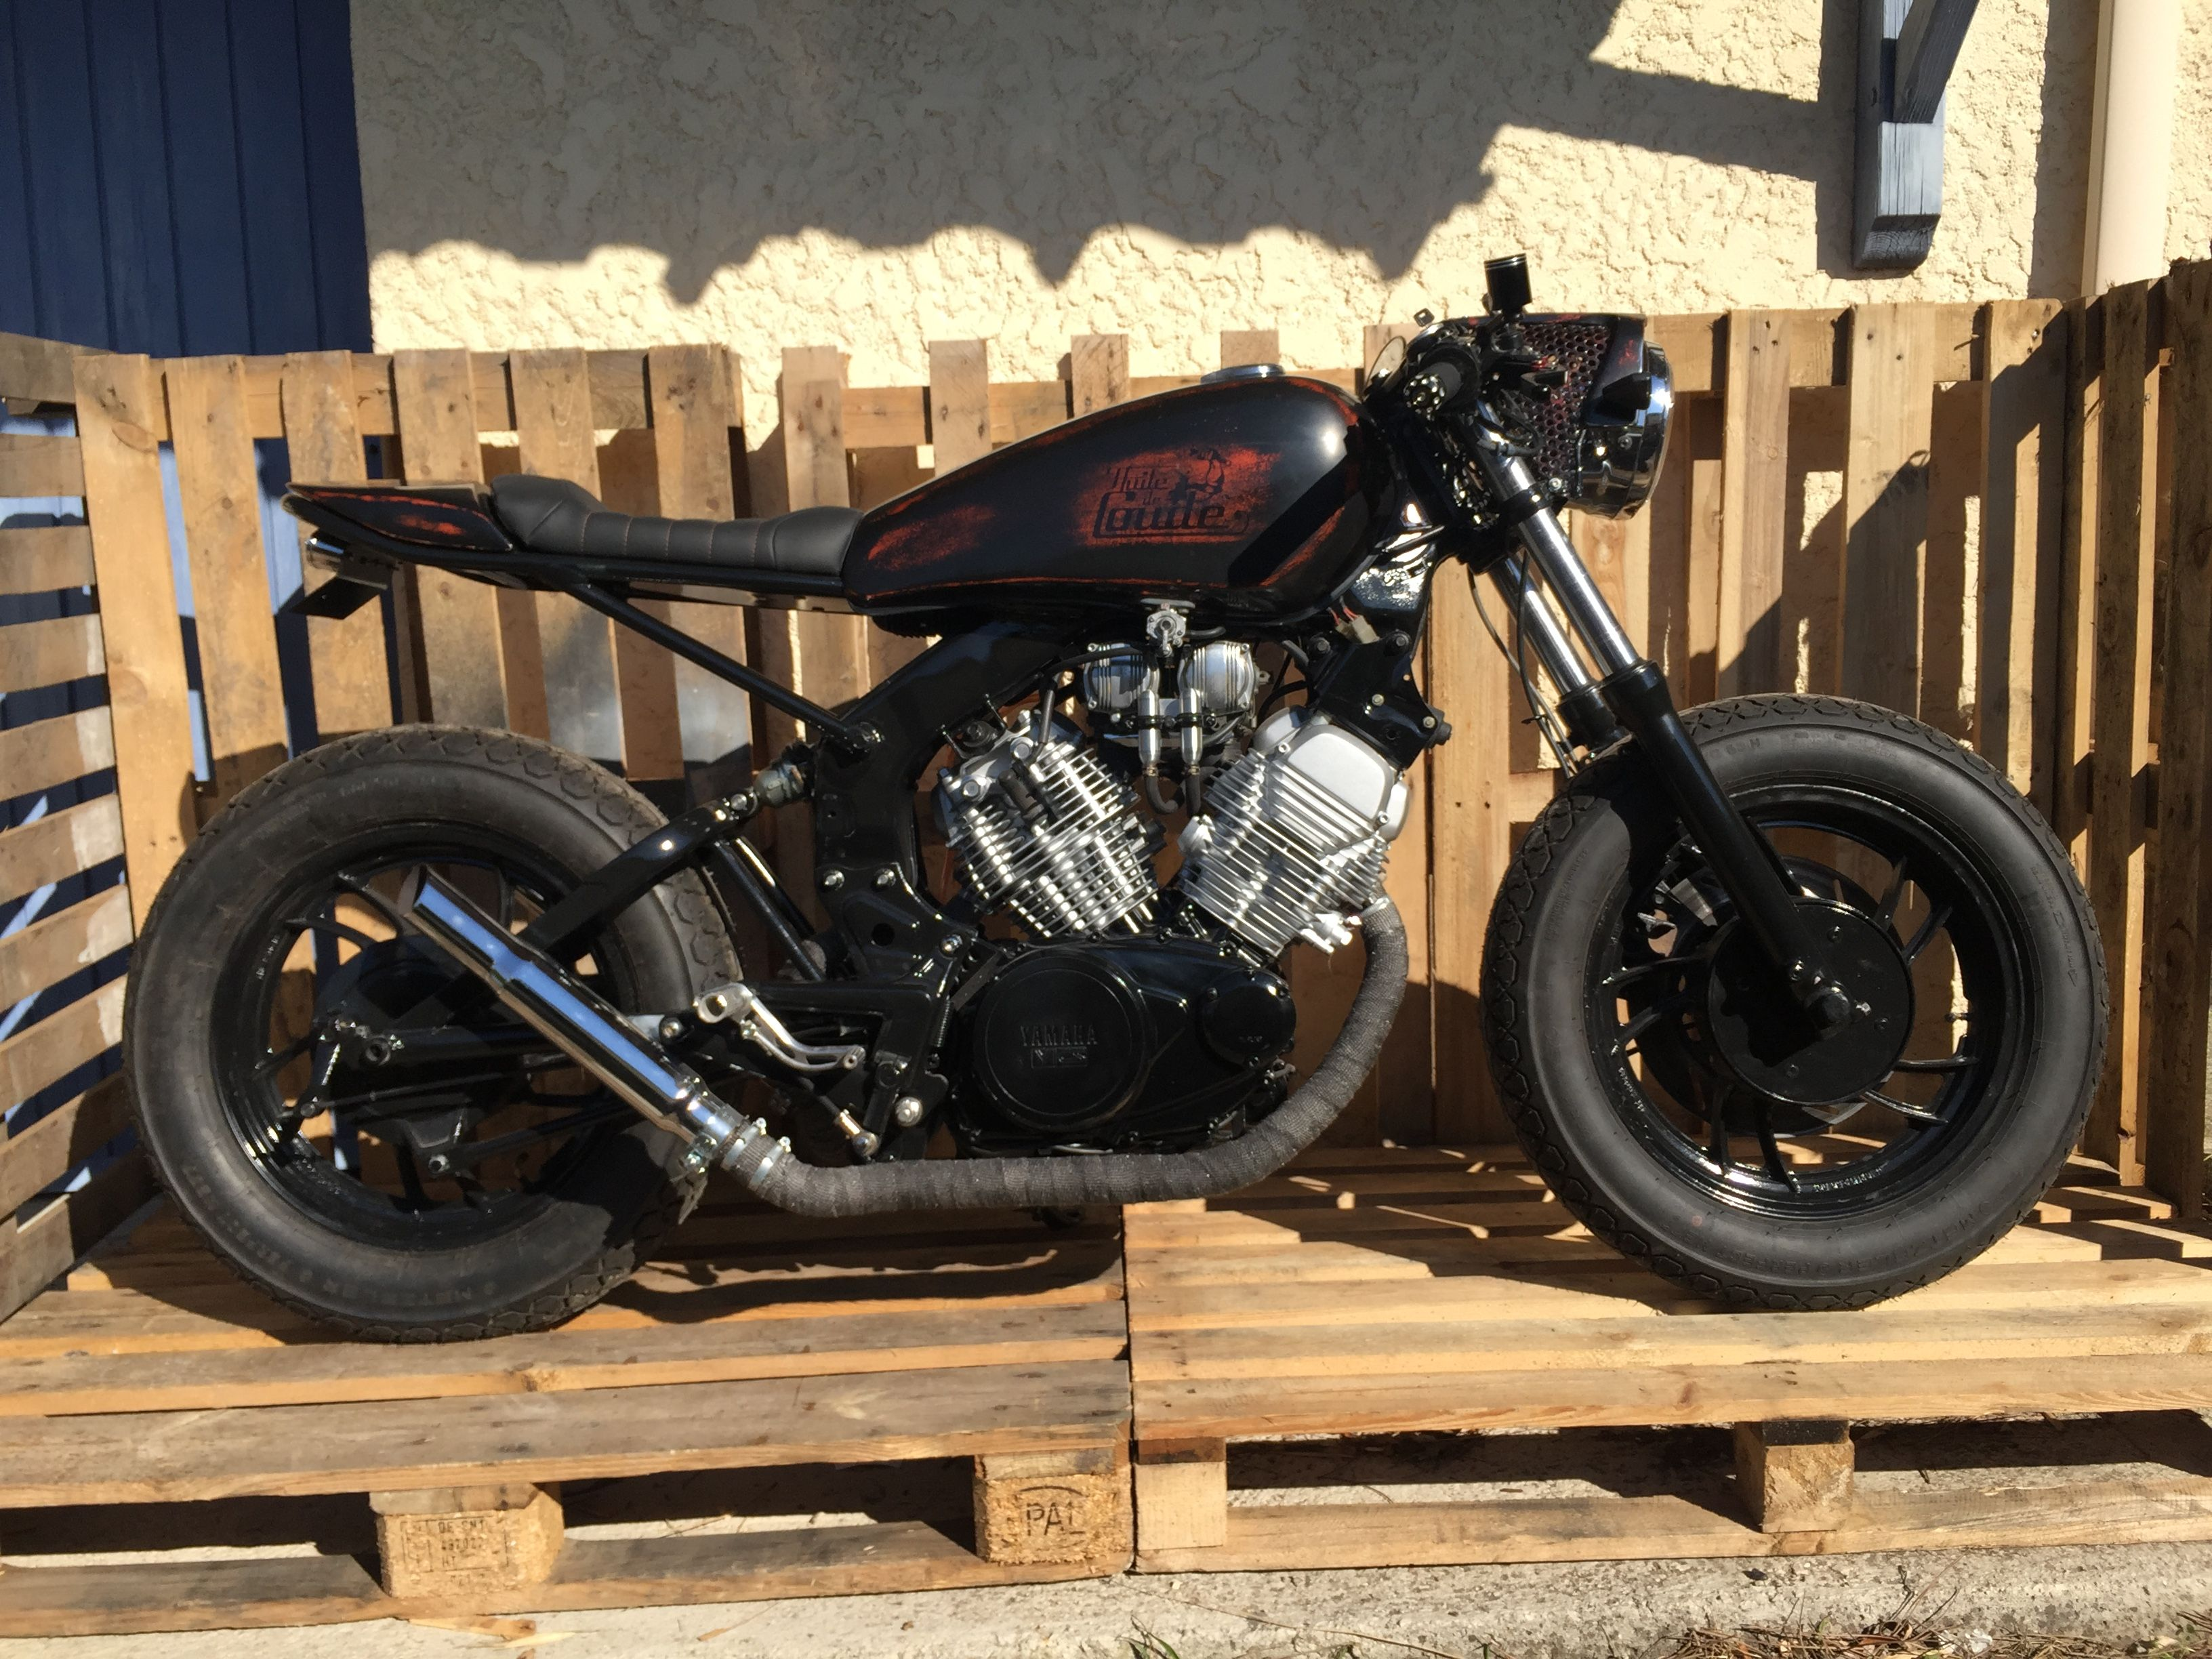 xv 500 cafe racer huile de coude xv500 virago cafe racer en motorbike. Black Bedroom Furniture Sets. Home Design Ideas